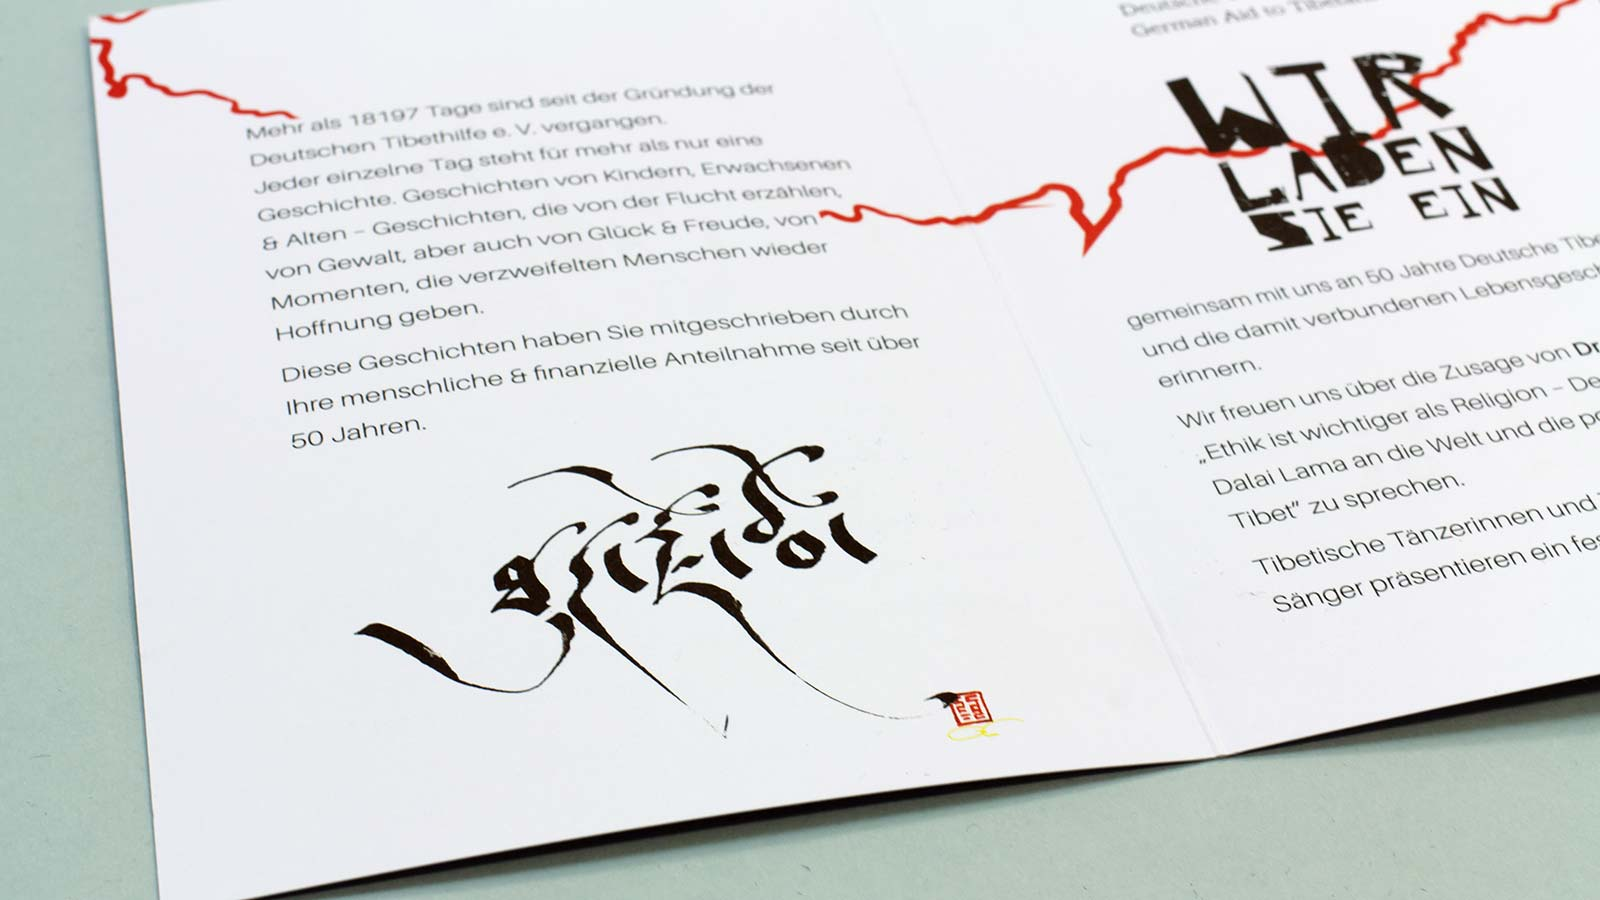 Folder Deutsche Tibethilfe, Illustration, brandtbrandt Design Studio Hamburg